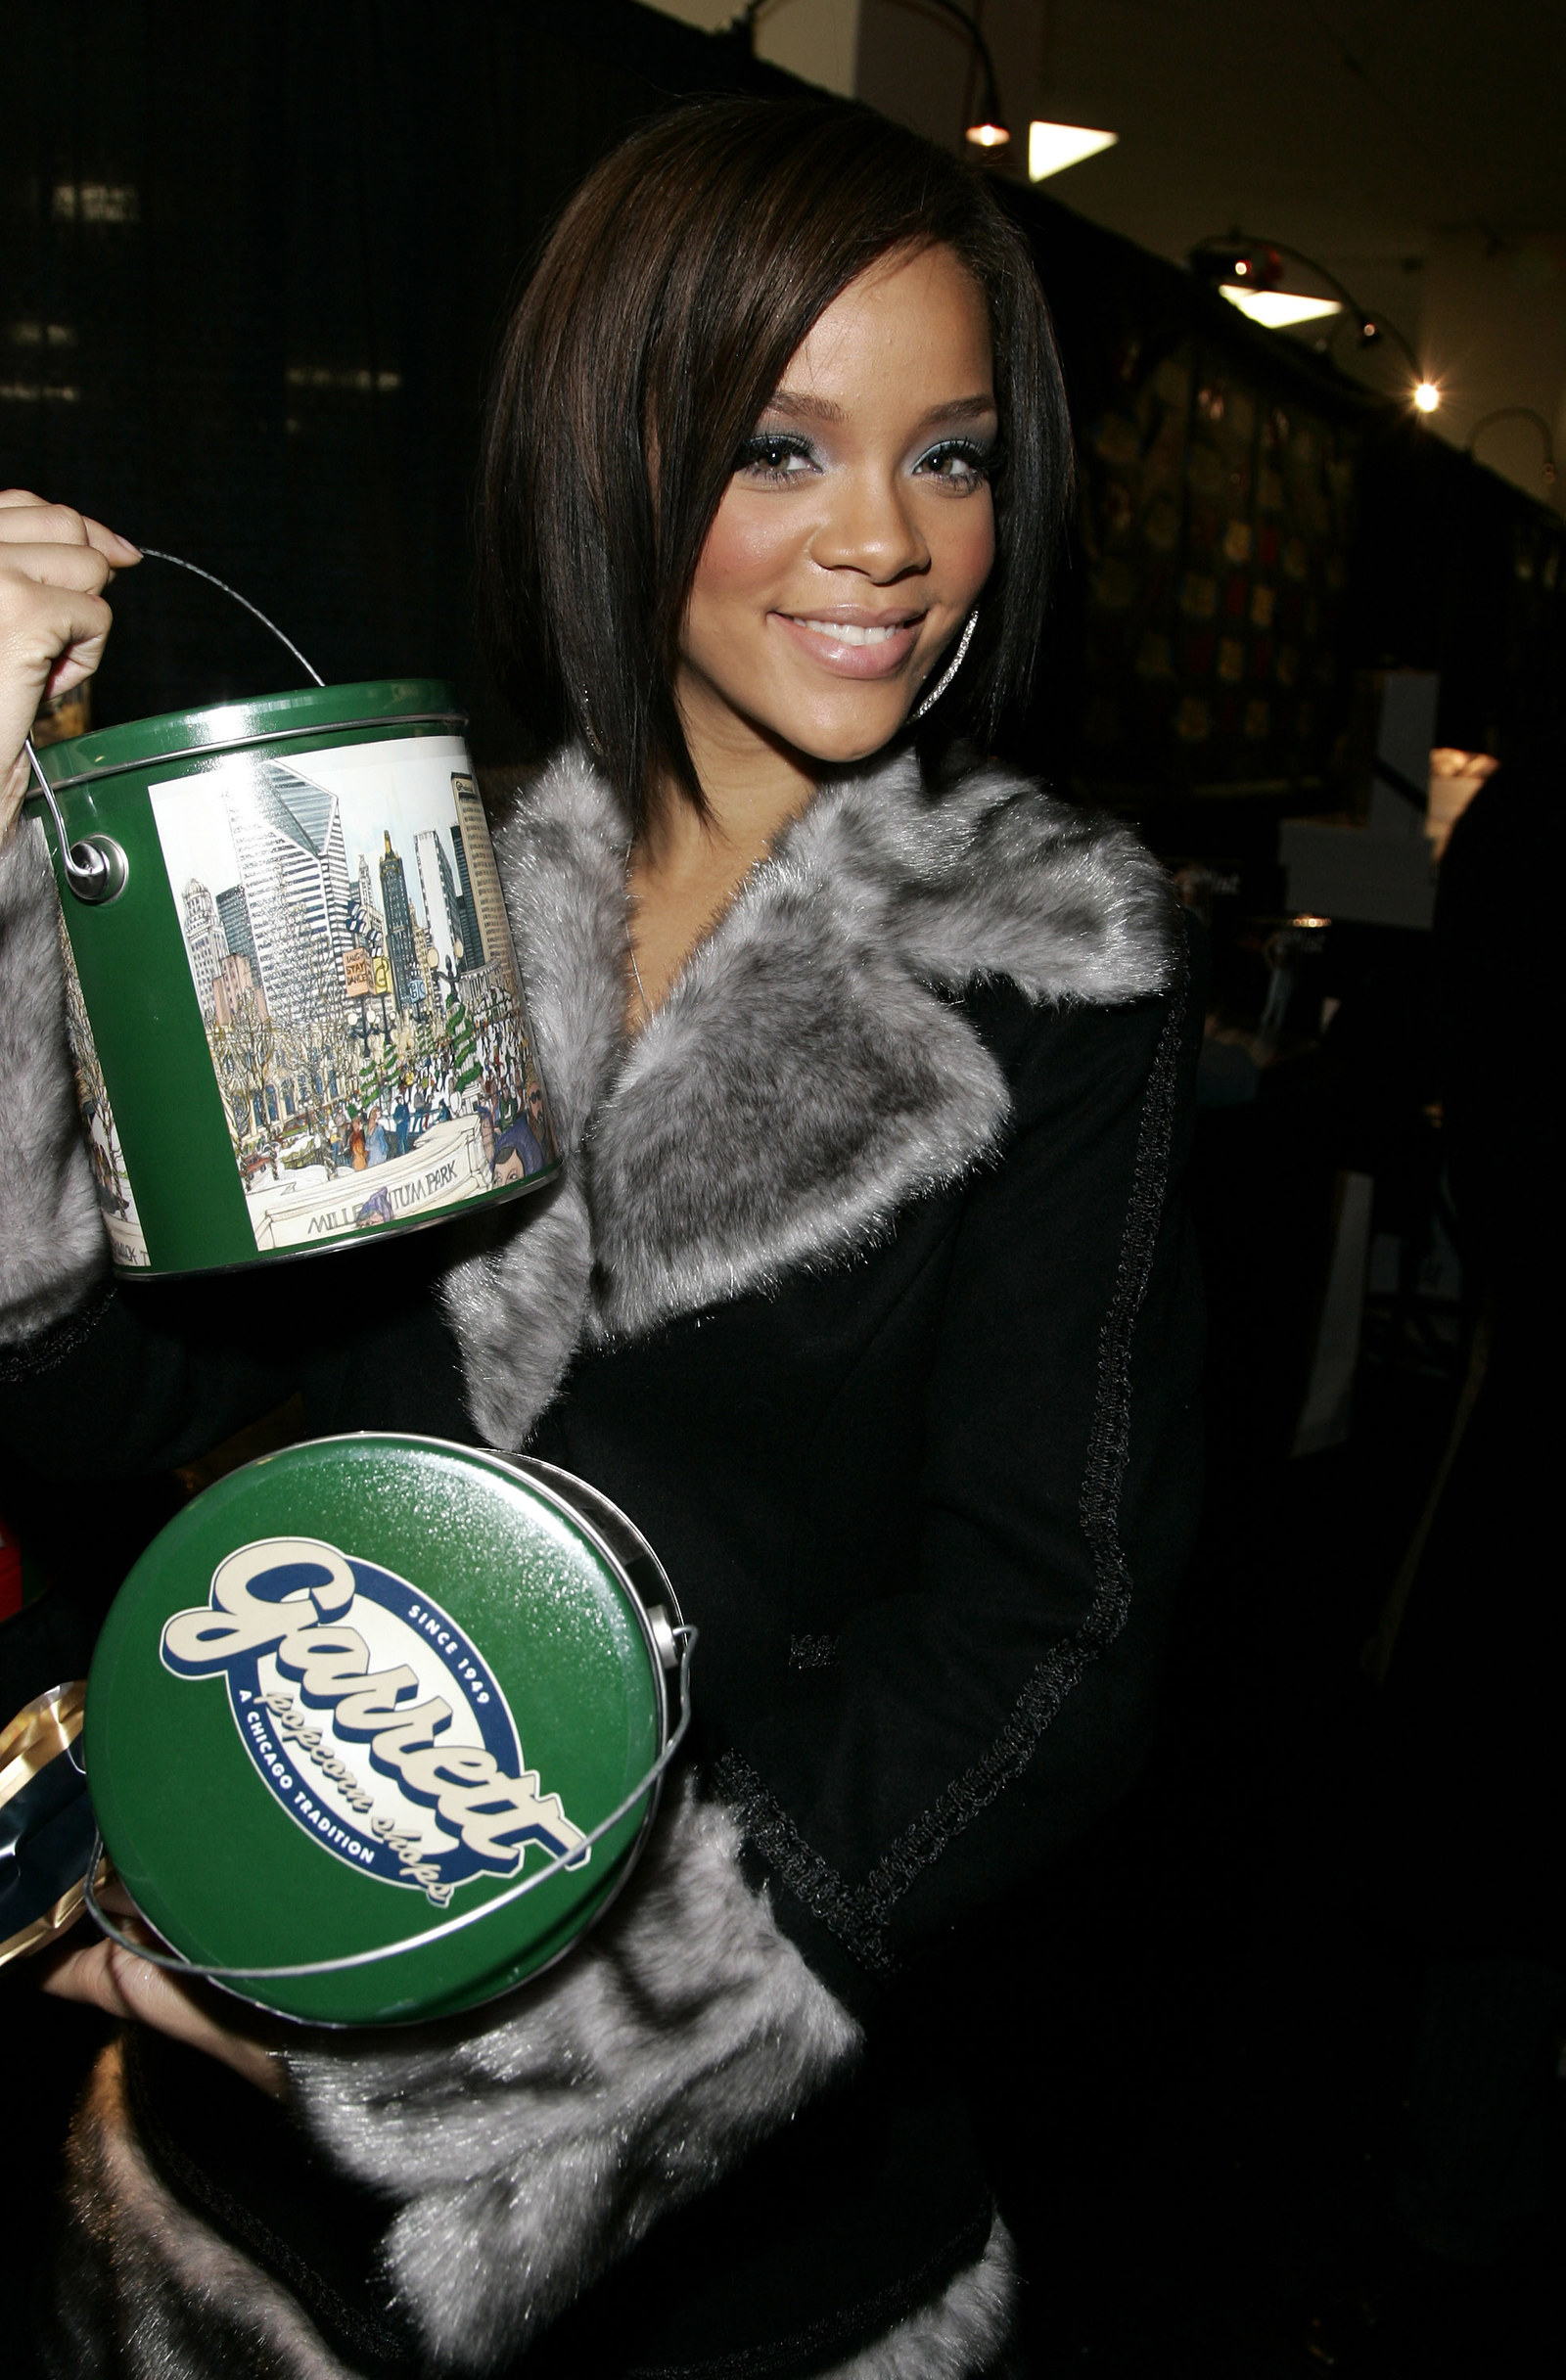 16 Pictures Of Super Famous People Holding Random Things So They Could Get Them For Free